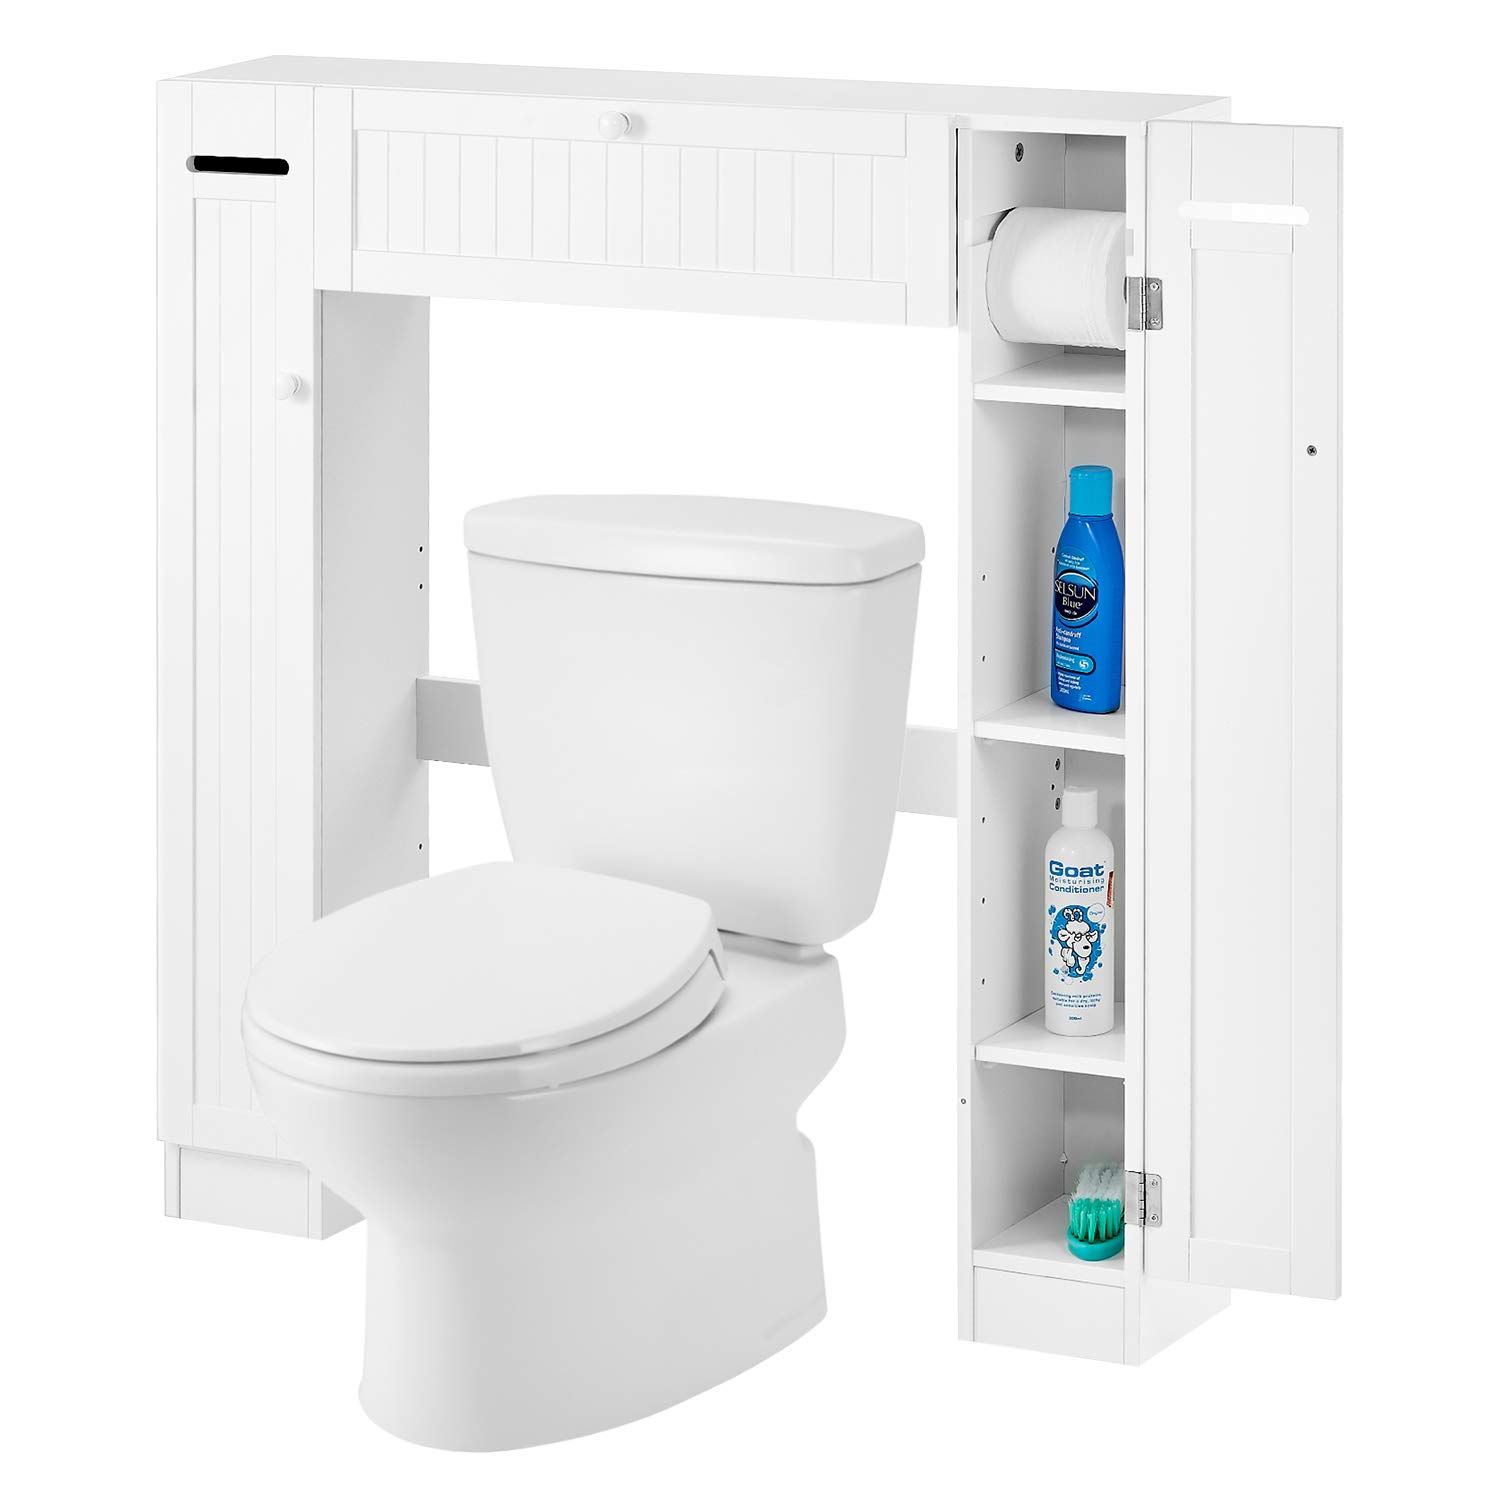 Over The Toilet Storage Cabinet Kealive Toilet Cabinet Organizer with 2 Side Doors, Paper Holder and Adjustable Shelves, Bathroom Freestanding Spacesaver, 34.3L x 7.1W x 38.6H, White